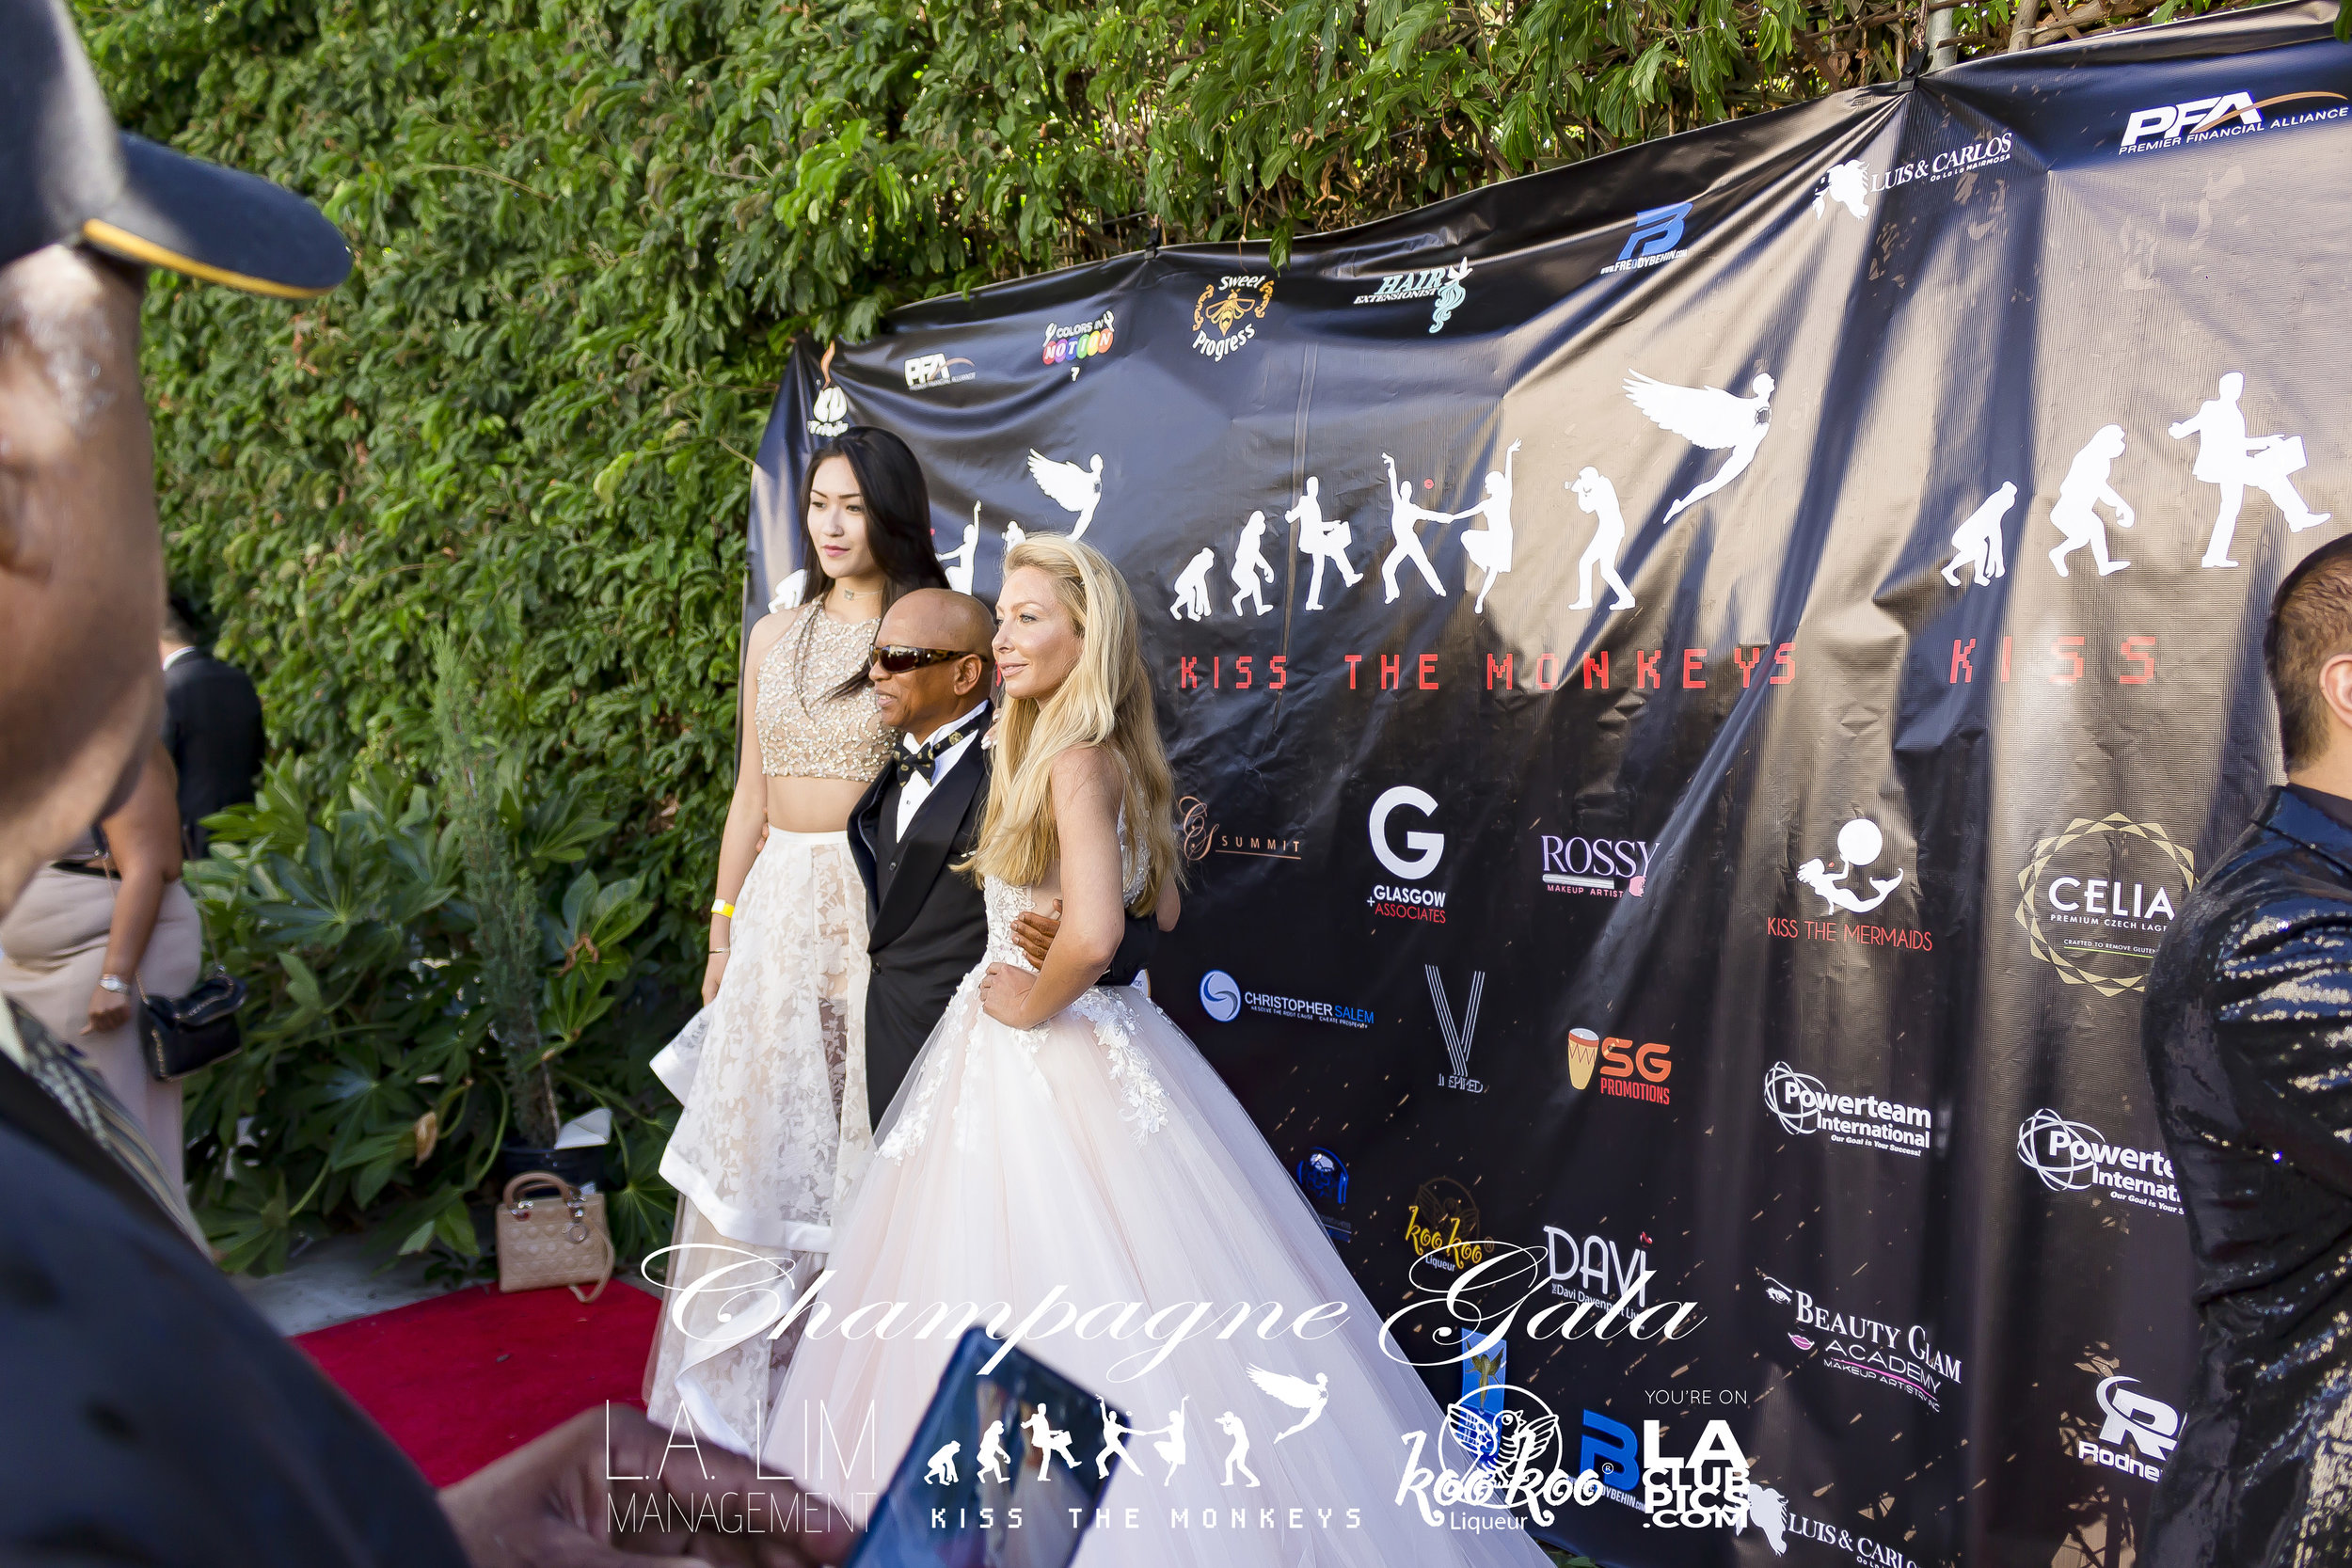 Kiss The Monkeys - Champagne Gala - 07-21-18_8.jpg